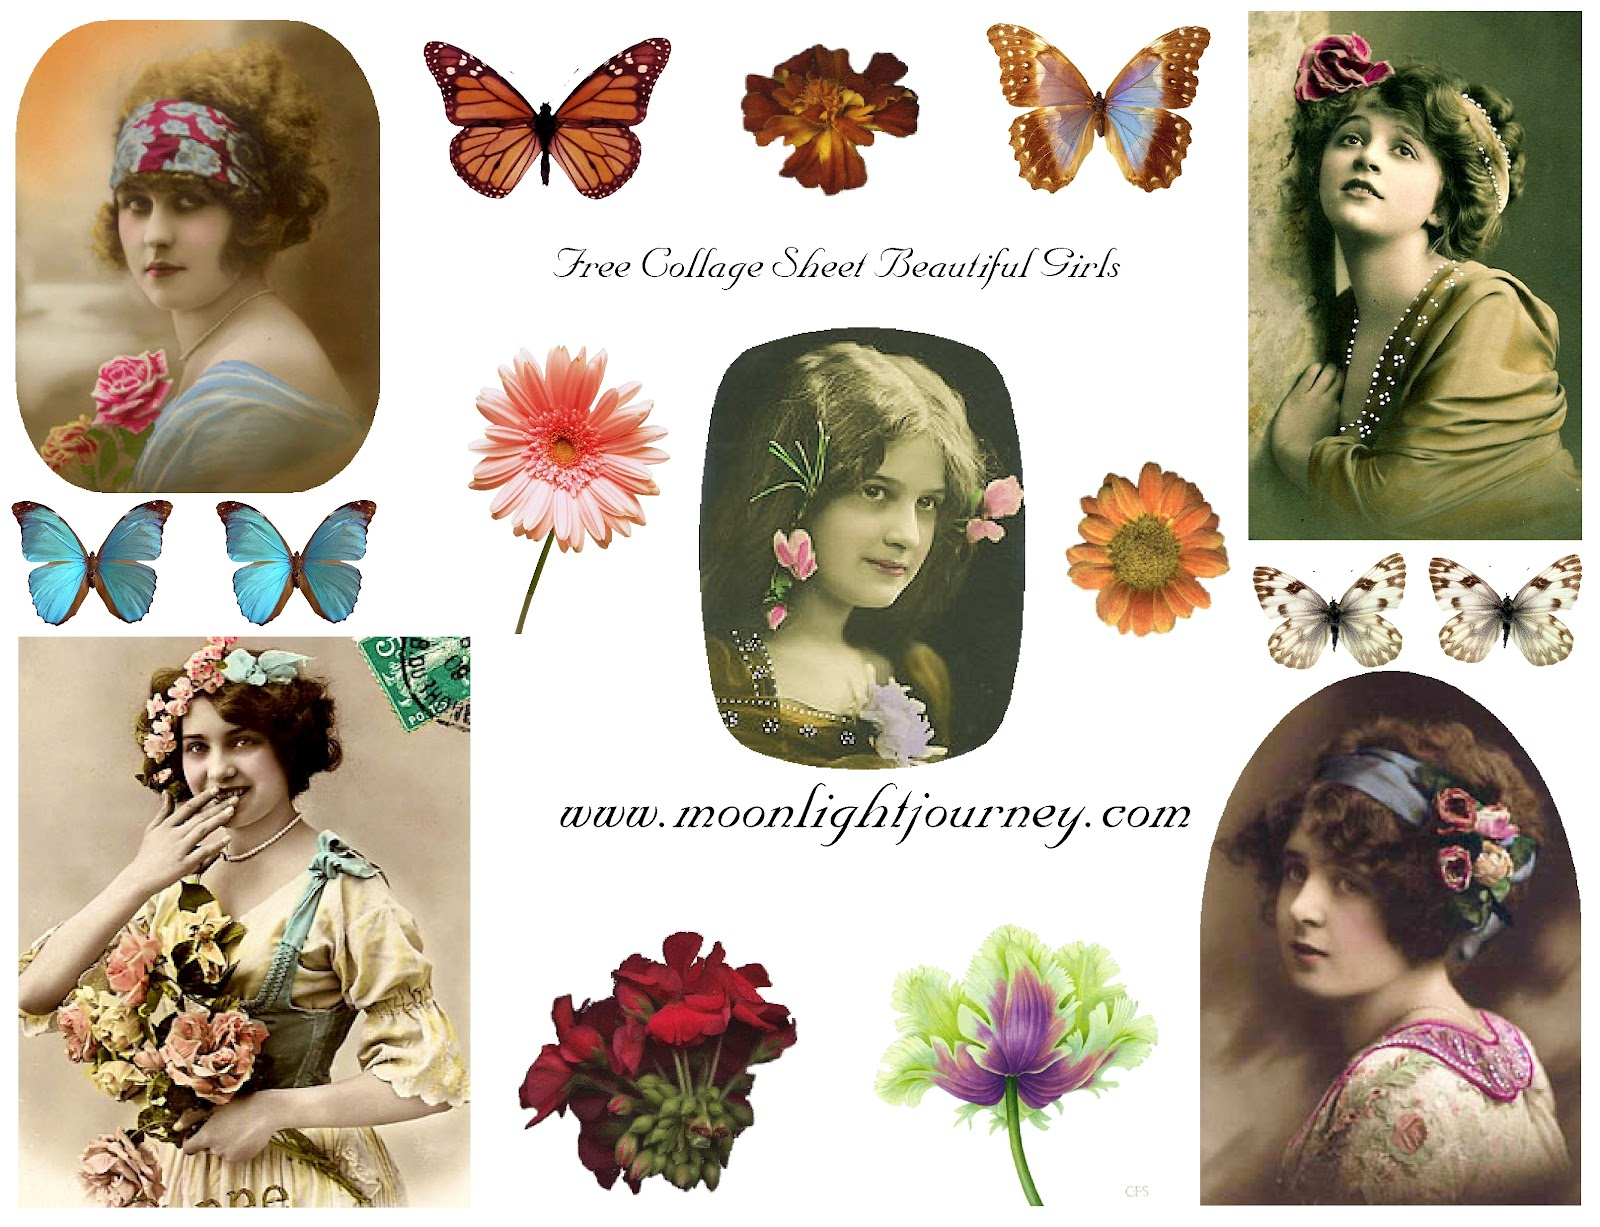 Moonlightjourney: Free Collage Sheets - Free Printable Digital Collage Sheets